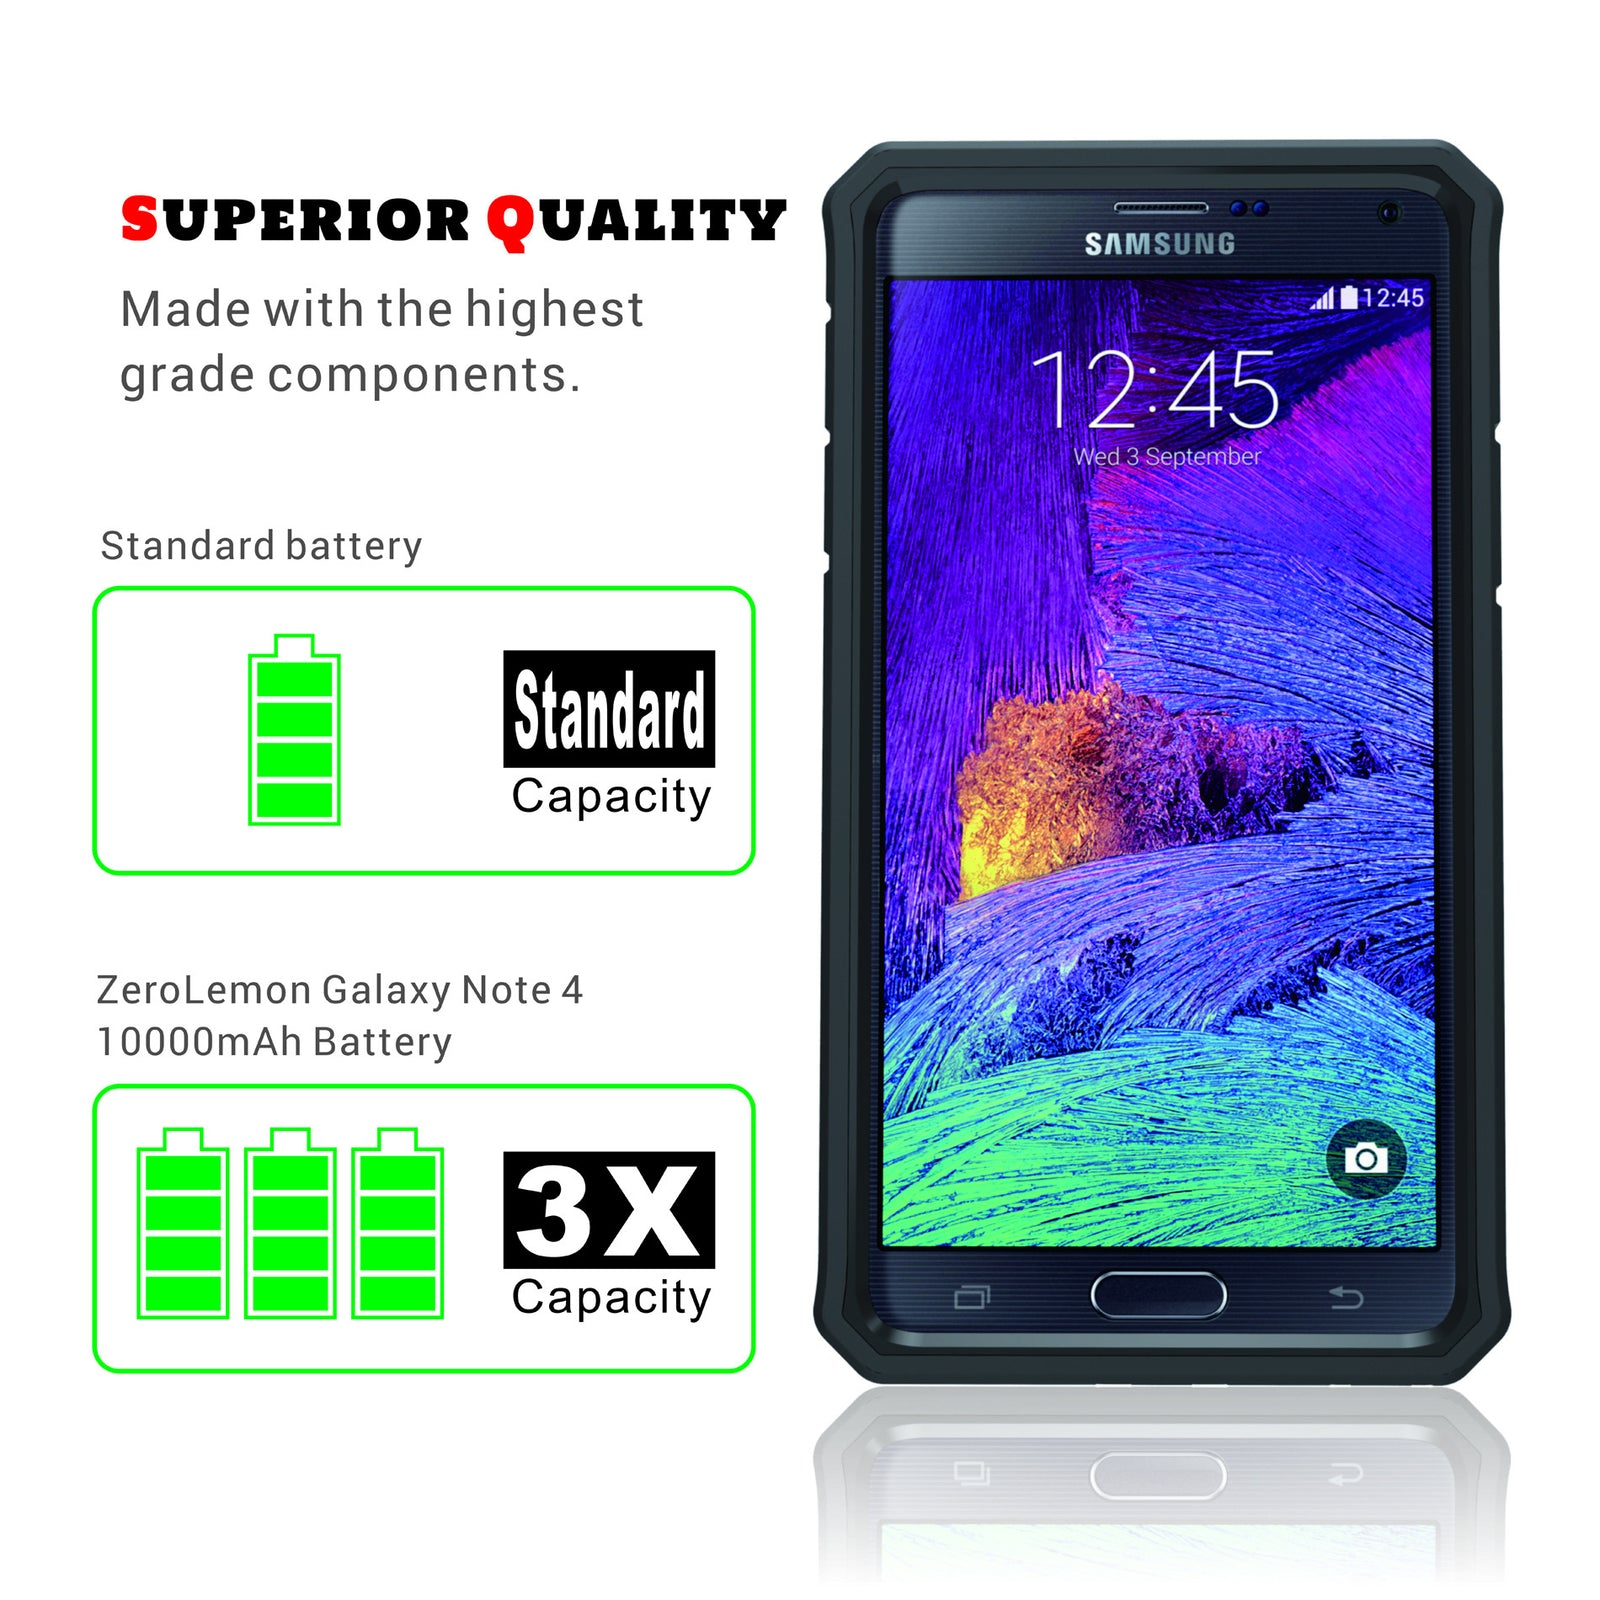 end rug stabilized news rugged with the new reveals is model high large and galaxy comes camera of earlier its note device format in phone latest display smartphones series dual today samsung announced korean